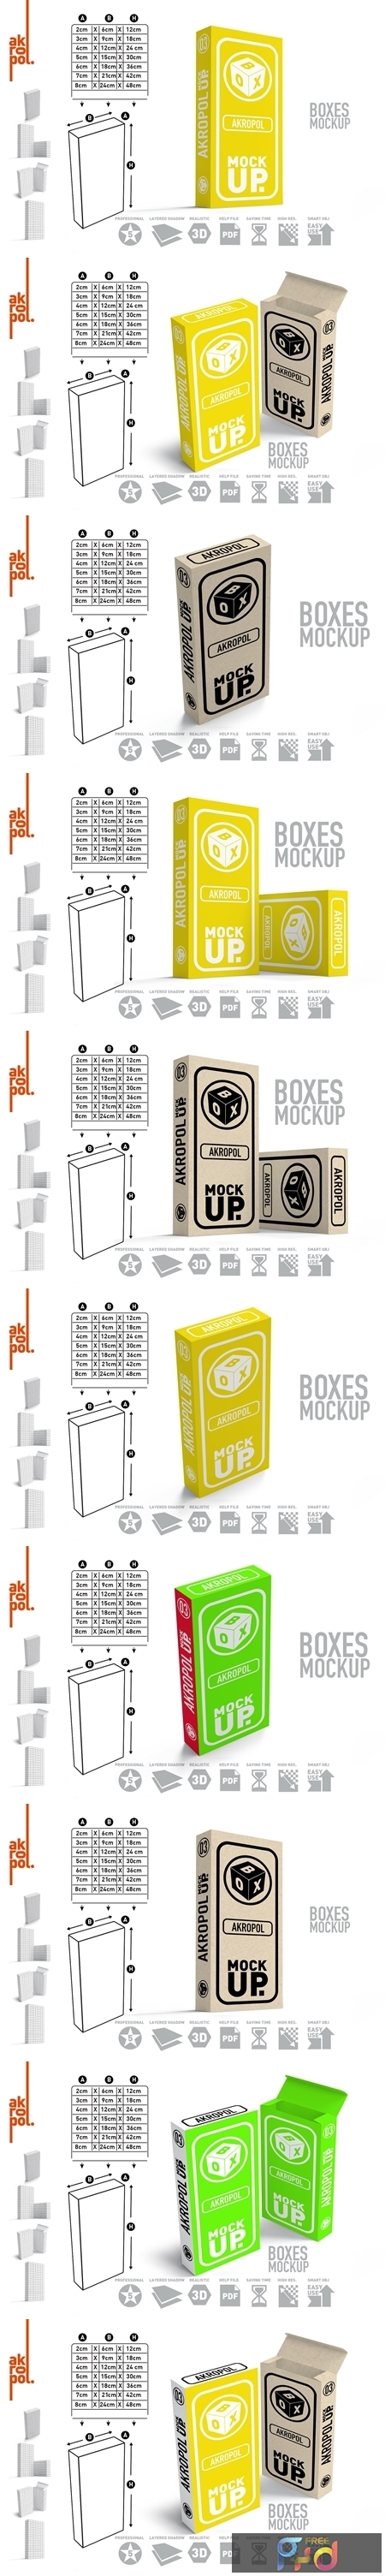 Box Mock Up-03 4276440 1